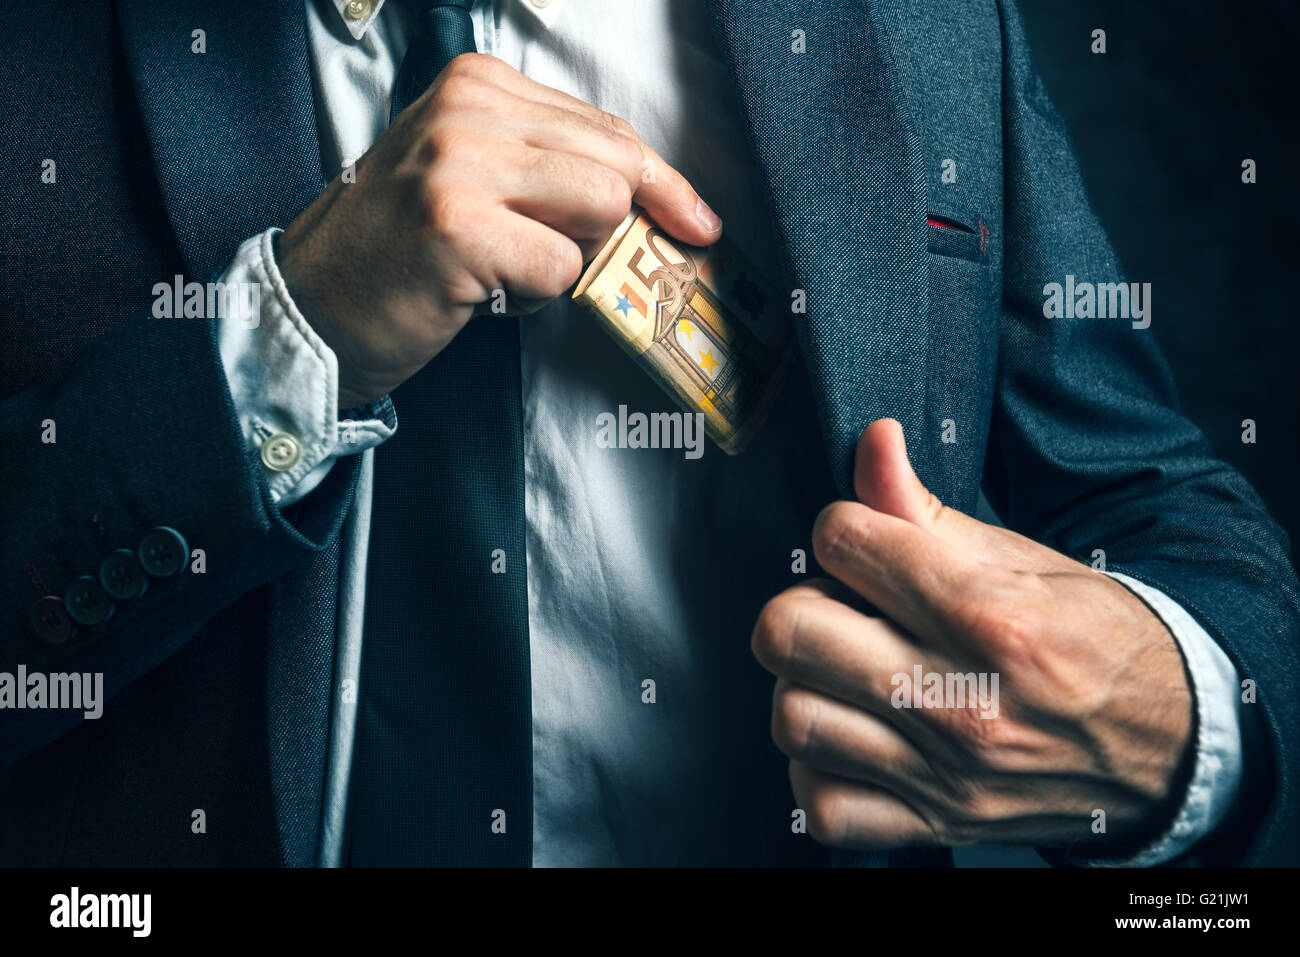 Money in pocket, businessman putting euro banknotes in suit pocket, bribe and corrupution concept. - Stock Image